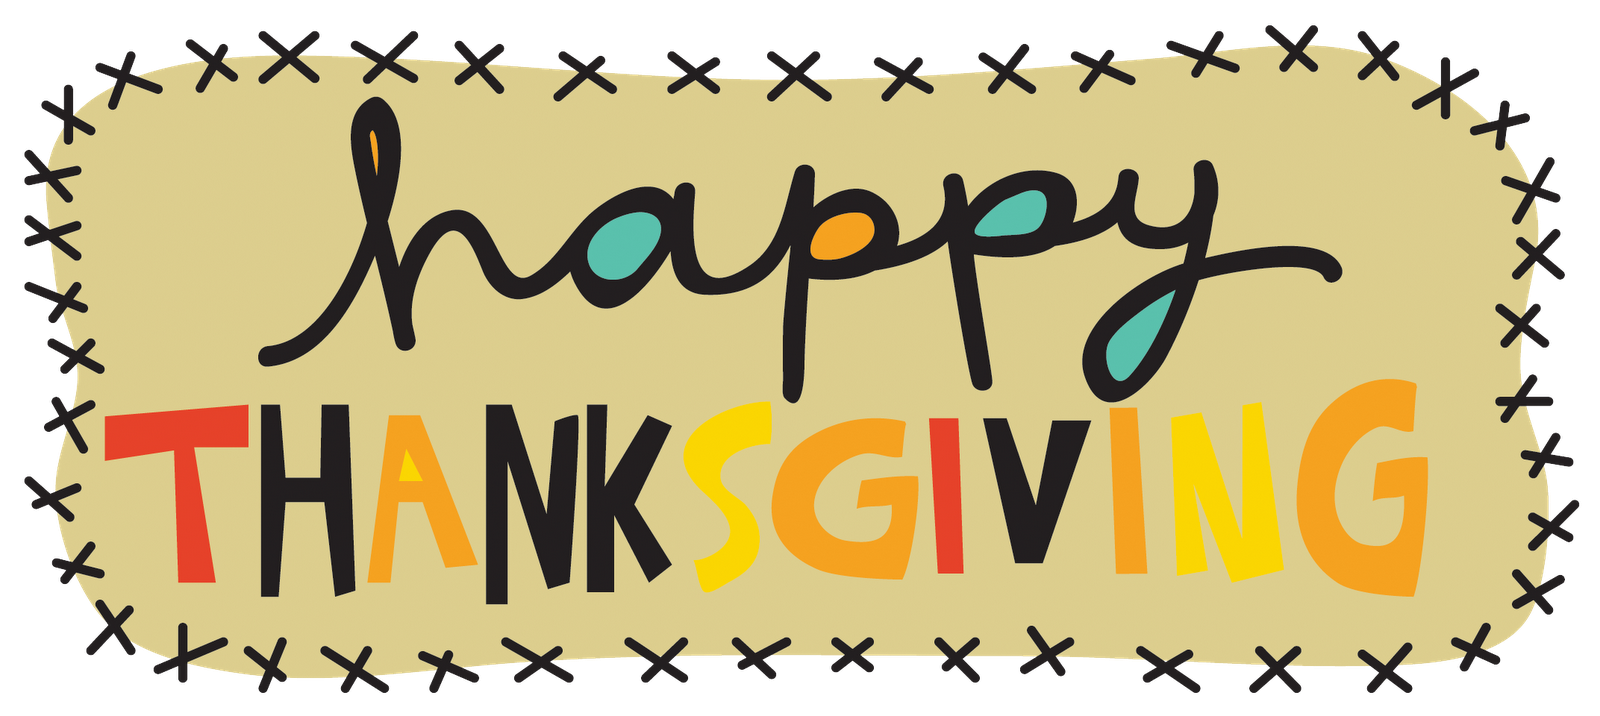 1600x716 Happy Thanksgiving Clipart In Spanish